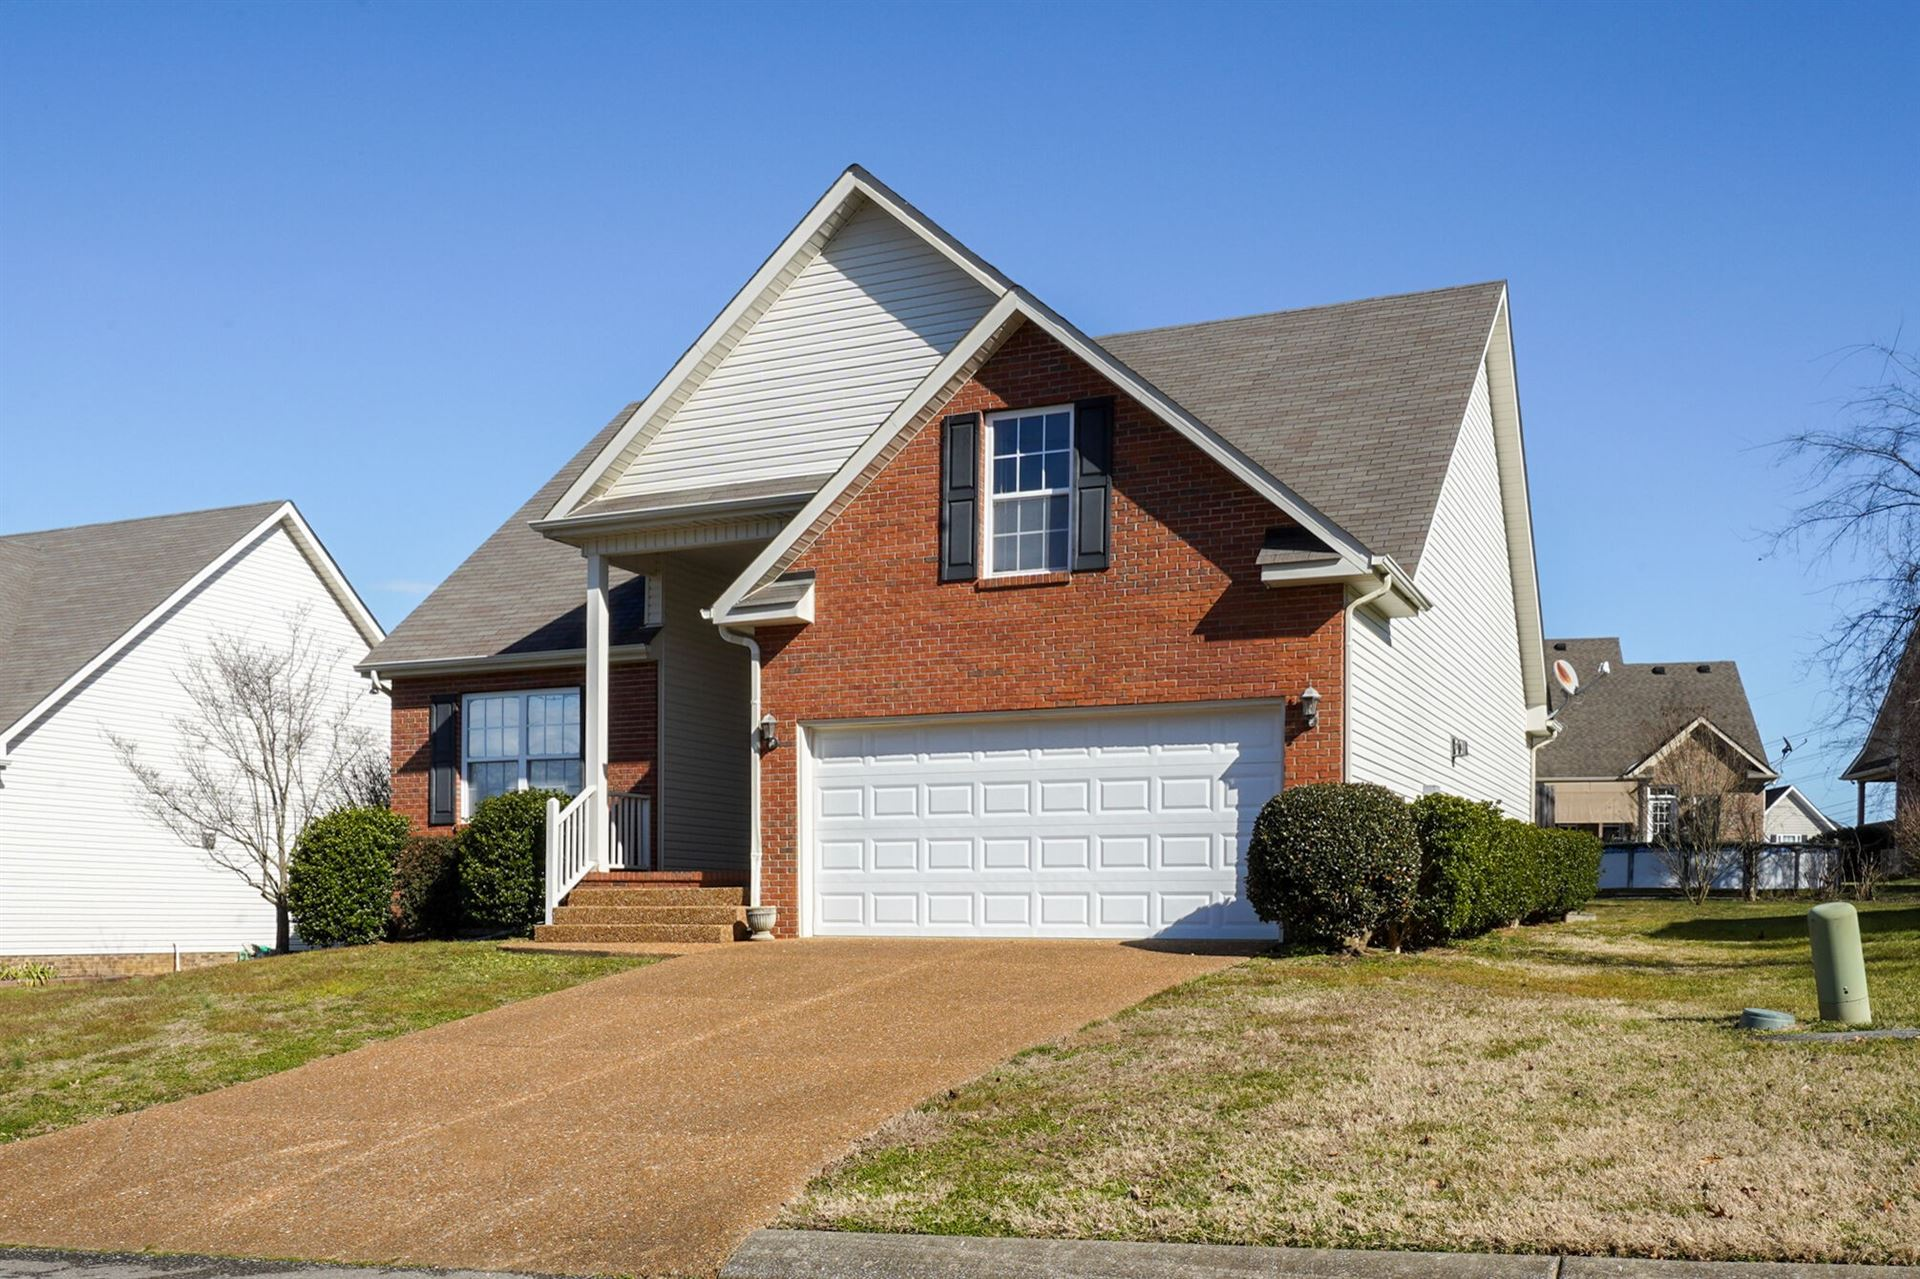 Photo of 2023 Patrick Way, Spring Hill, TN 37174 (MLS # 2232204)